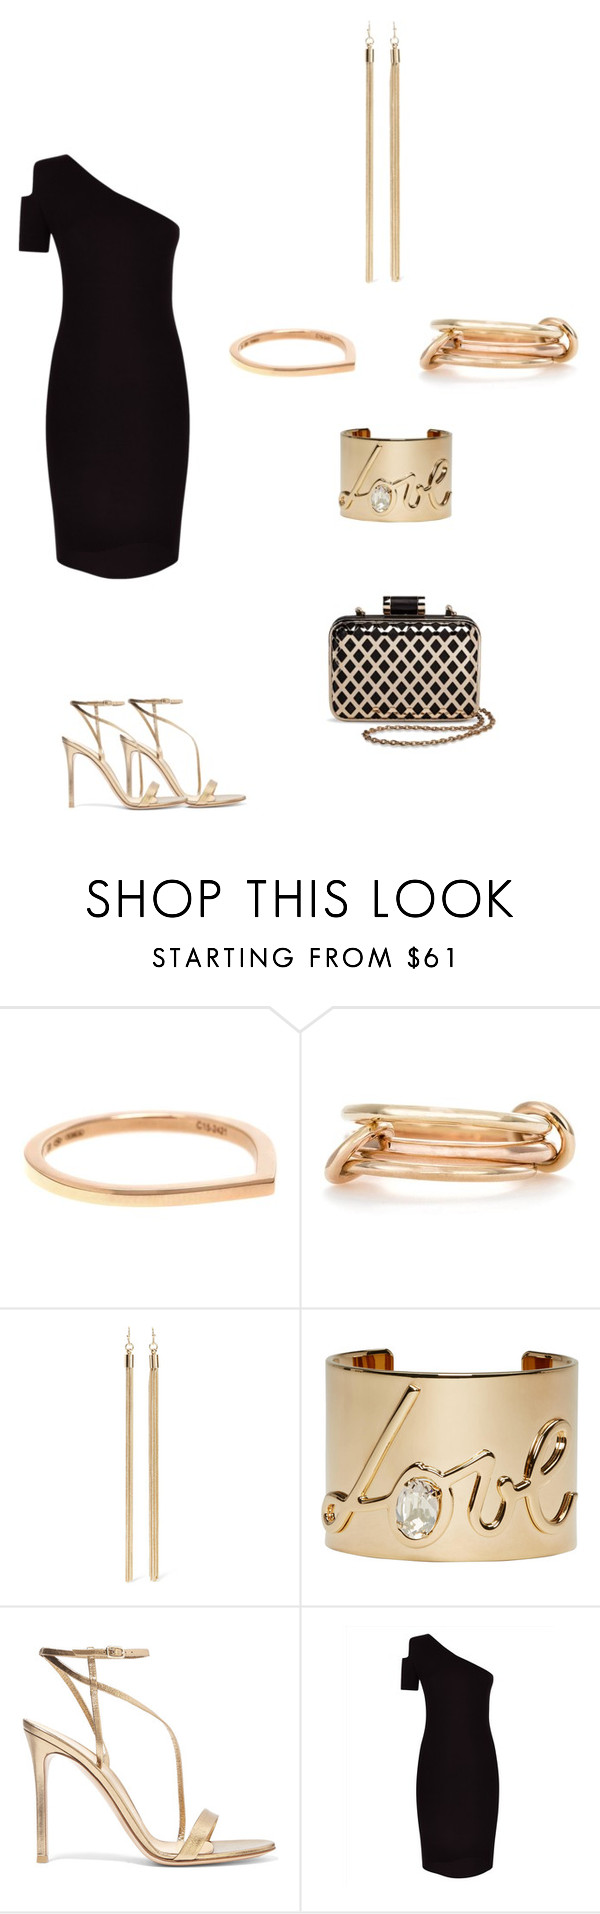 """""""Untitled #289"""" by paty8797 ❤ liked on Polyvore featuring Repossi, SPINELLI KILCOLLIN, Kenneth Jay Lane, Lanvin, Gianvito Rossi, Jaeger and Tevolio"""